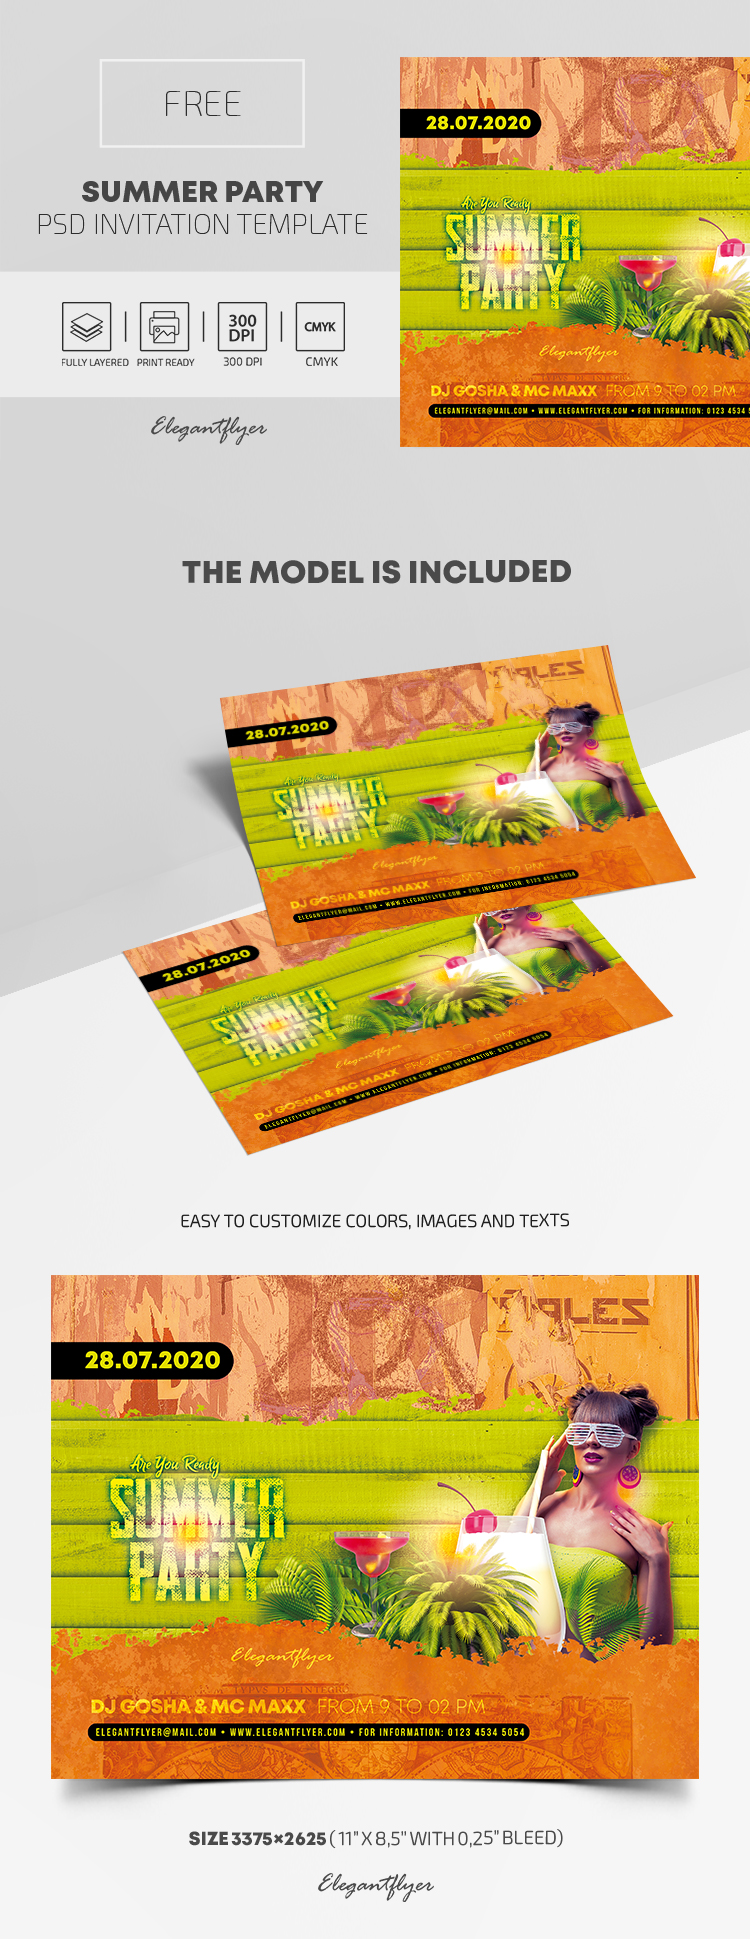 Free Summer Party Invitation PSD Template